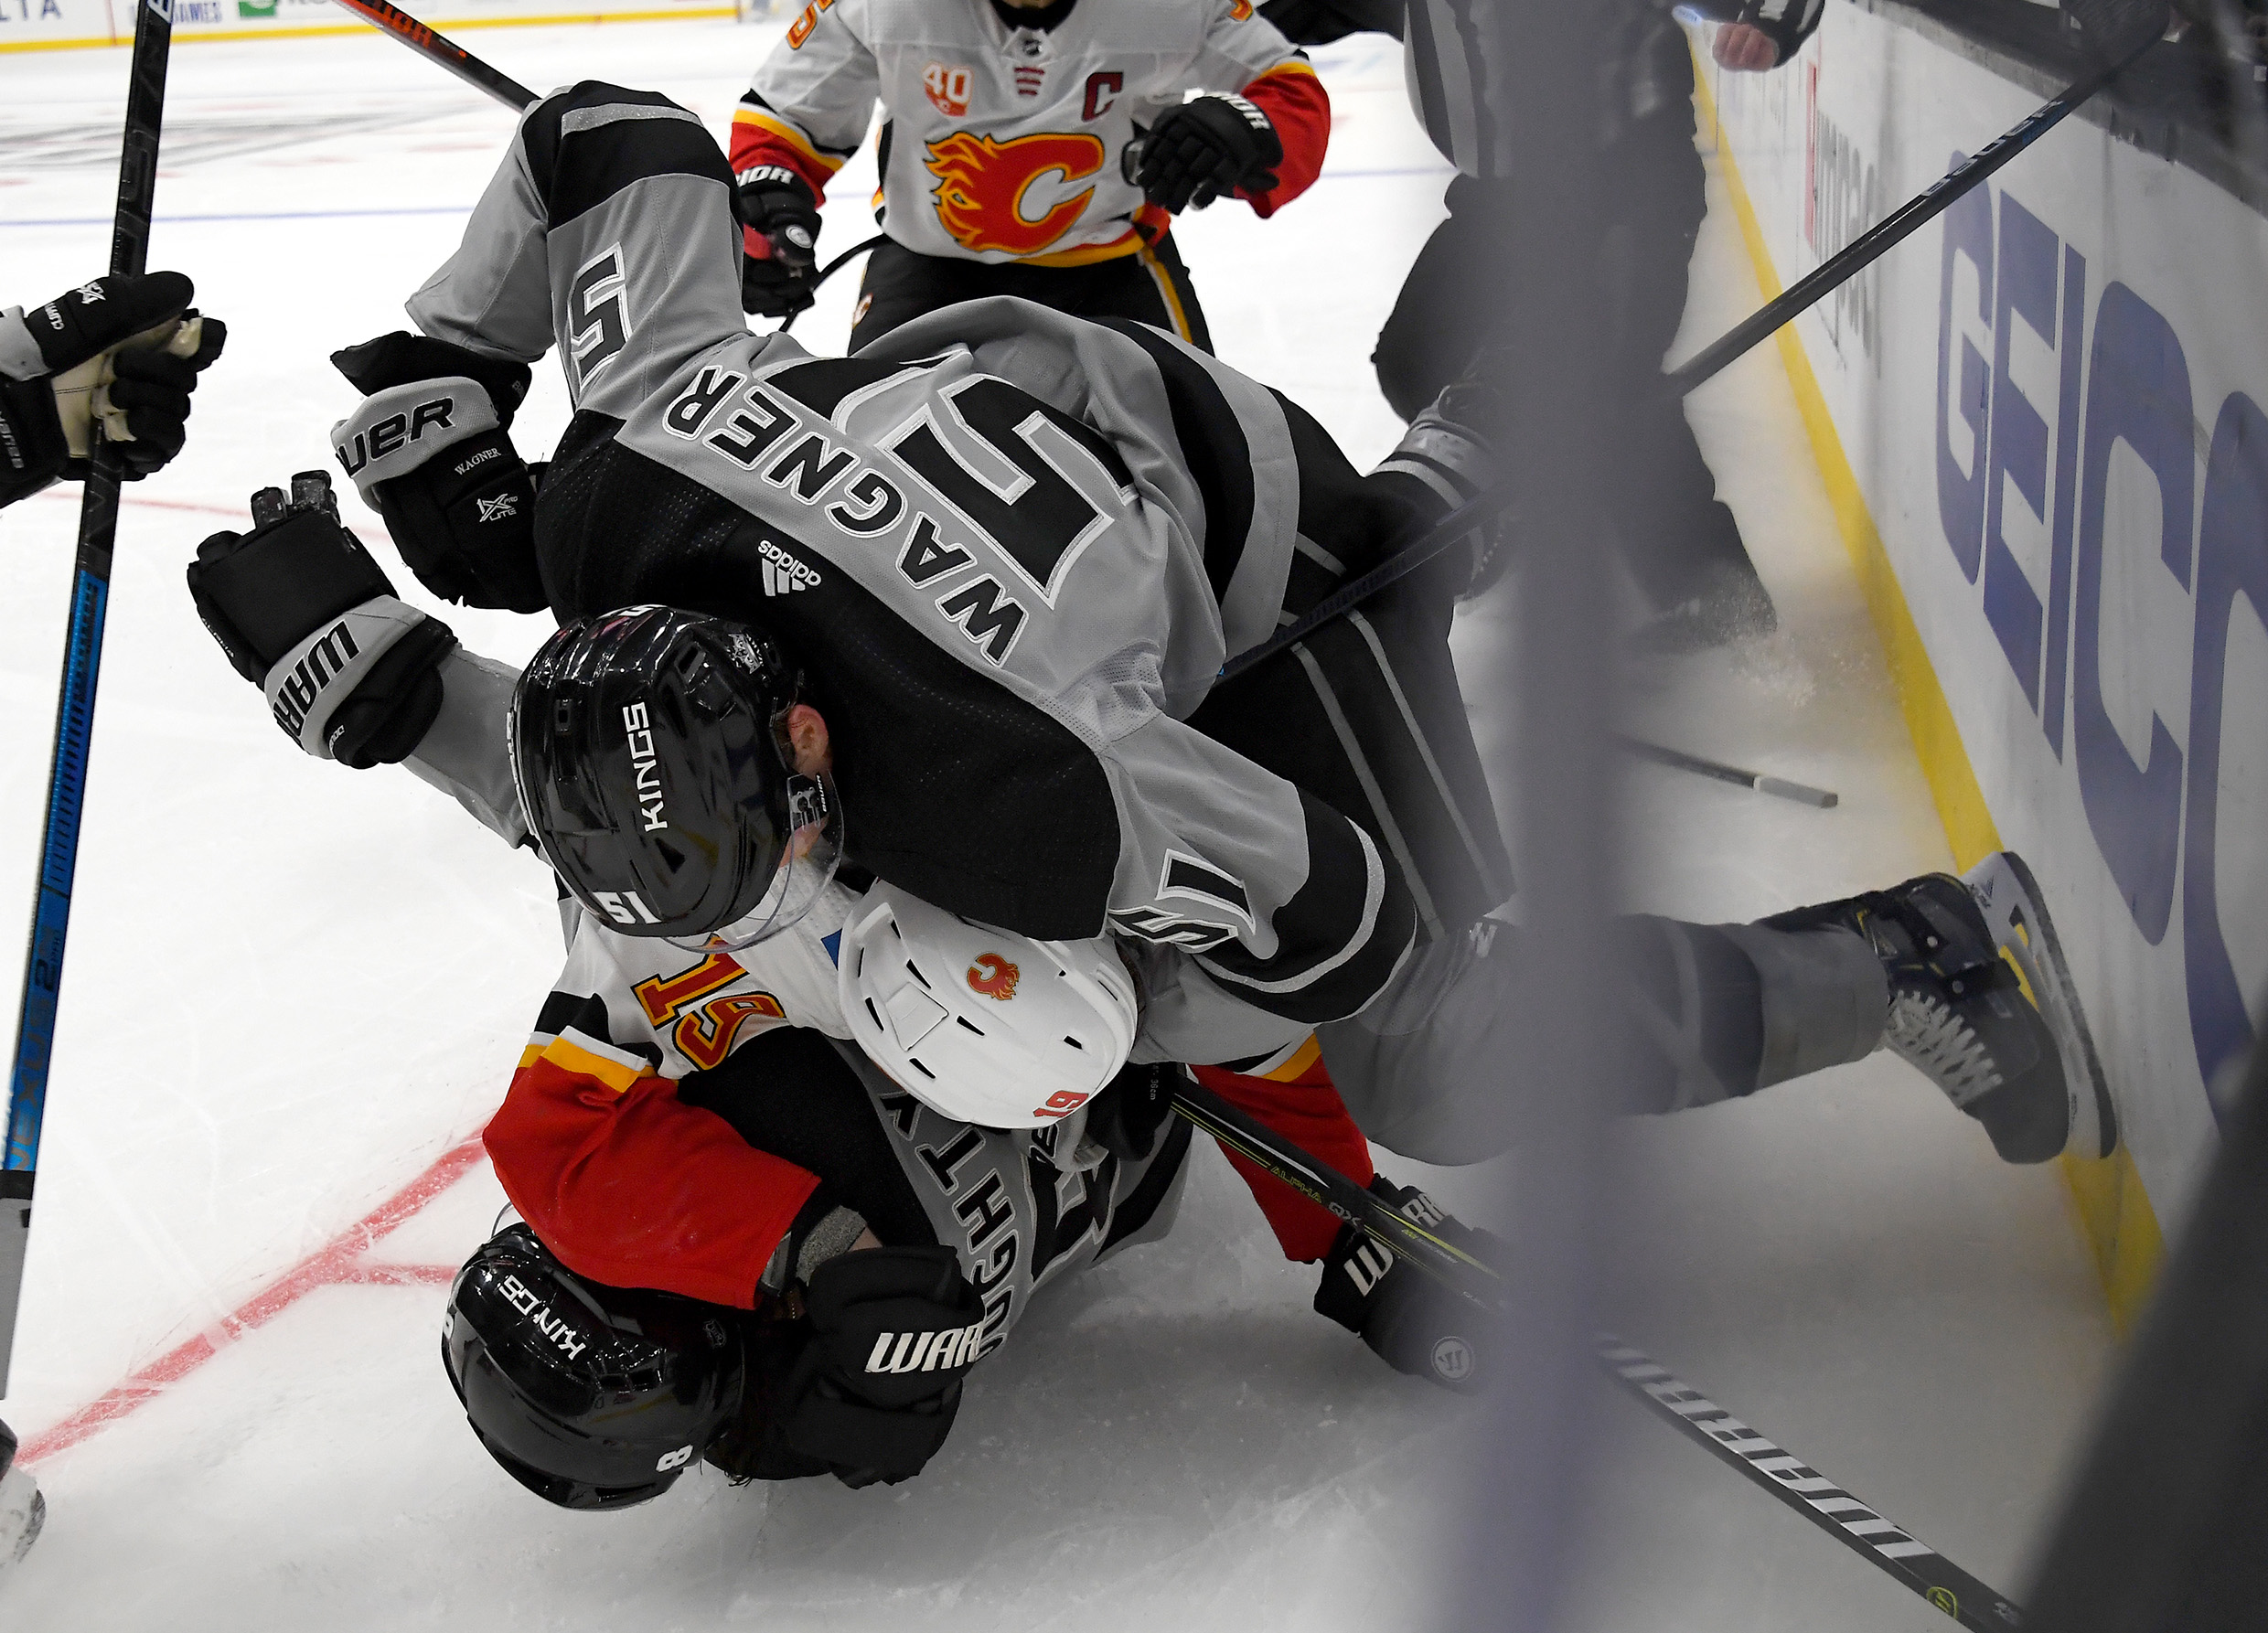 Los Angeles Kings defenseman Drew Doughty (8) is taken down by Calgary Flames center Tobias Rieder (16) as Los Angeles left wing Austin Wagner (51) jumps on the pile in the third period at Staples Center